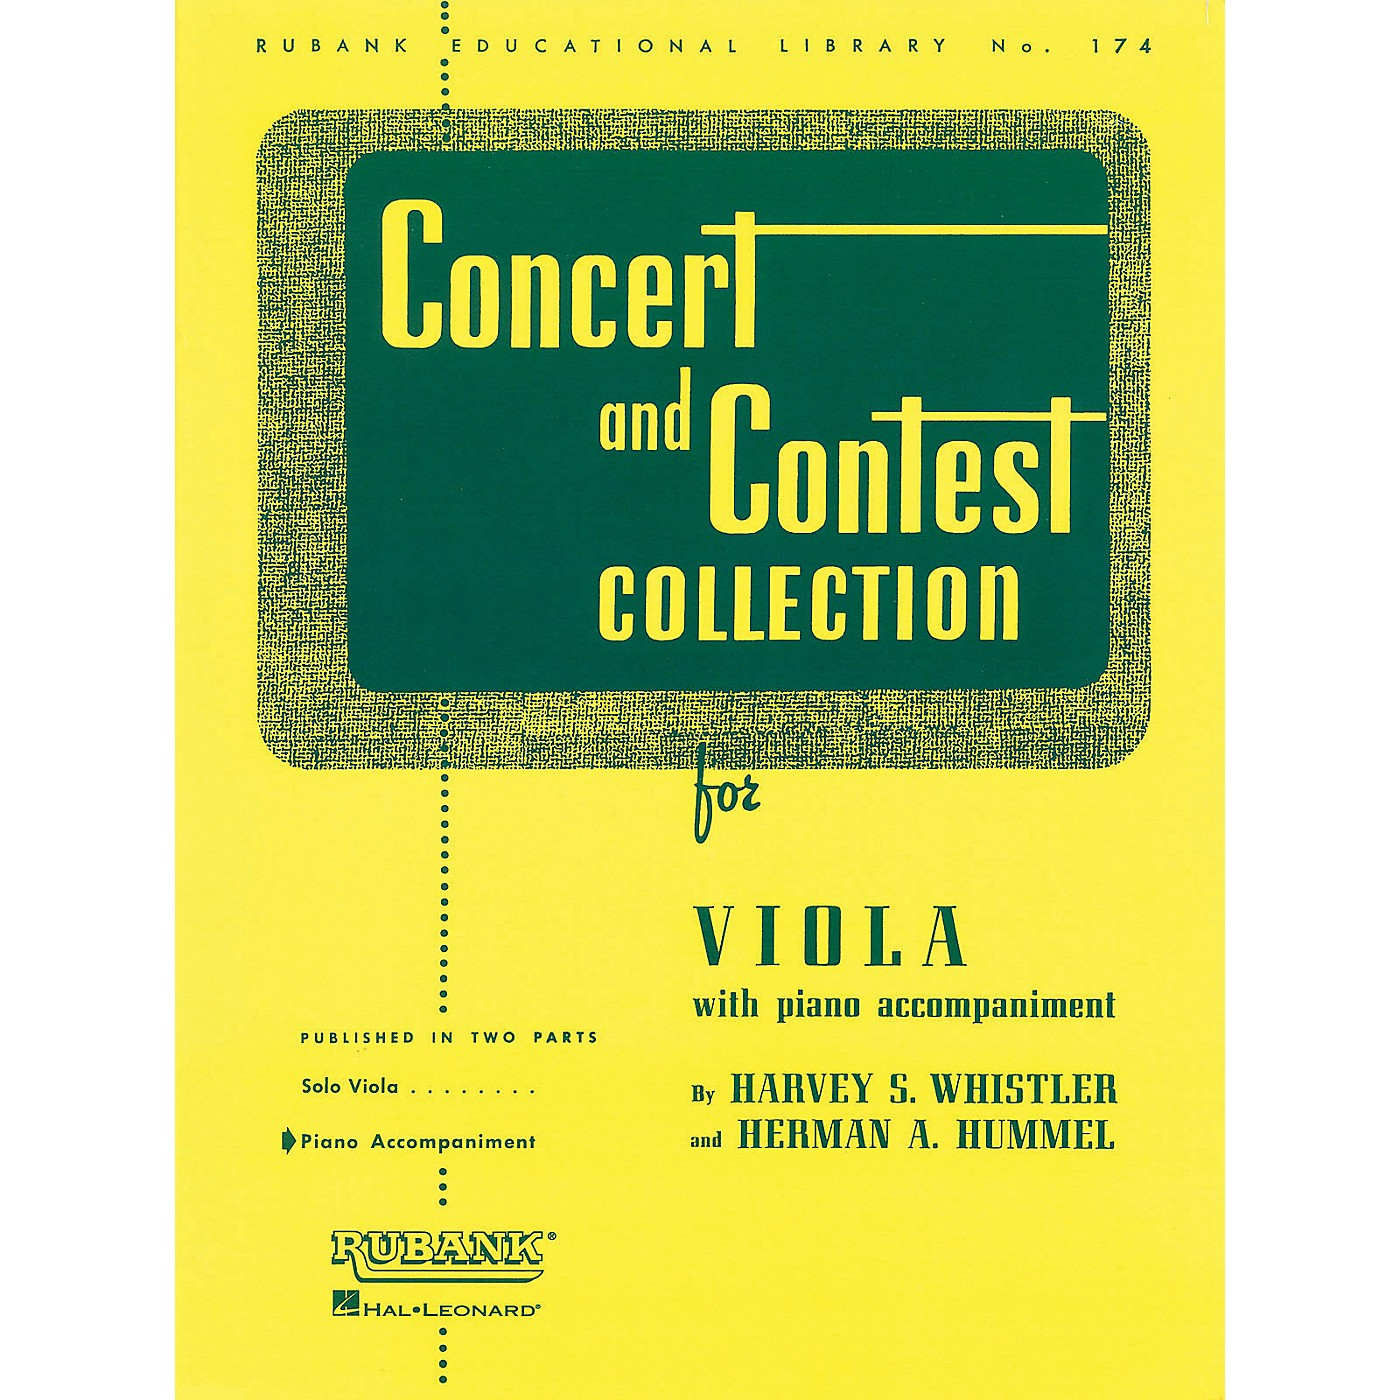 Hal Leonard Rubank Concert And Contest Collection - Viola Piano Accompaniment Only thumbnail